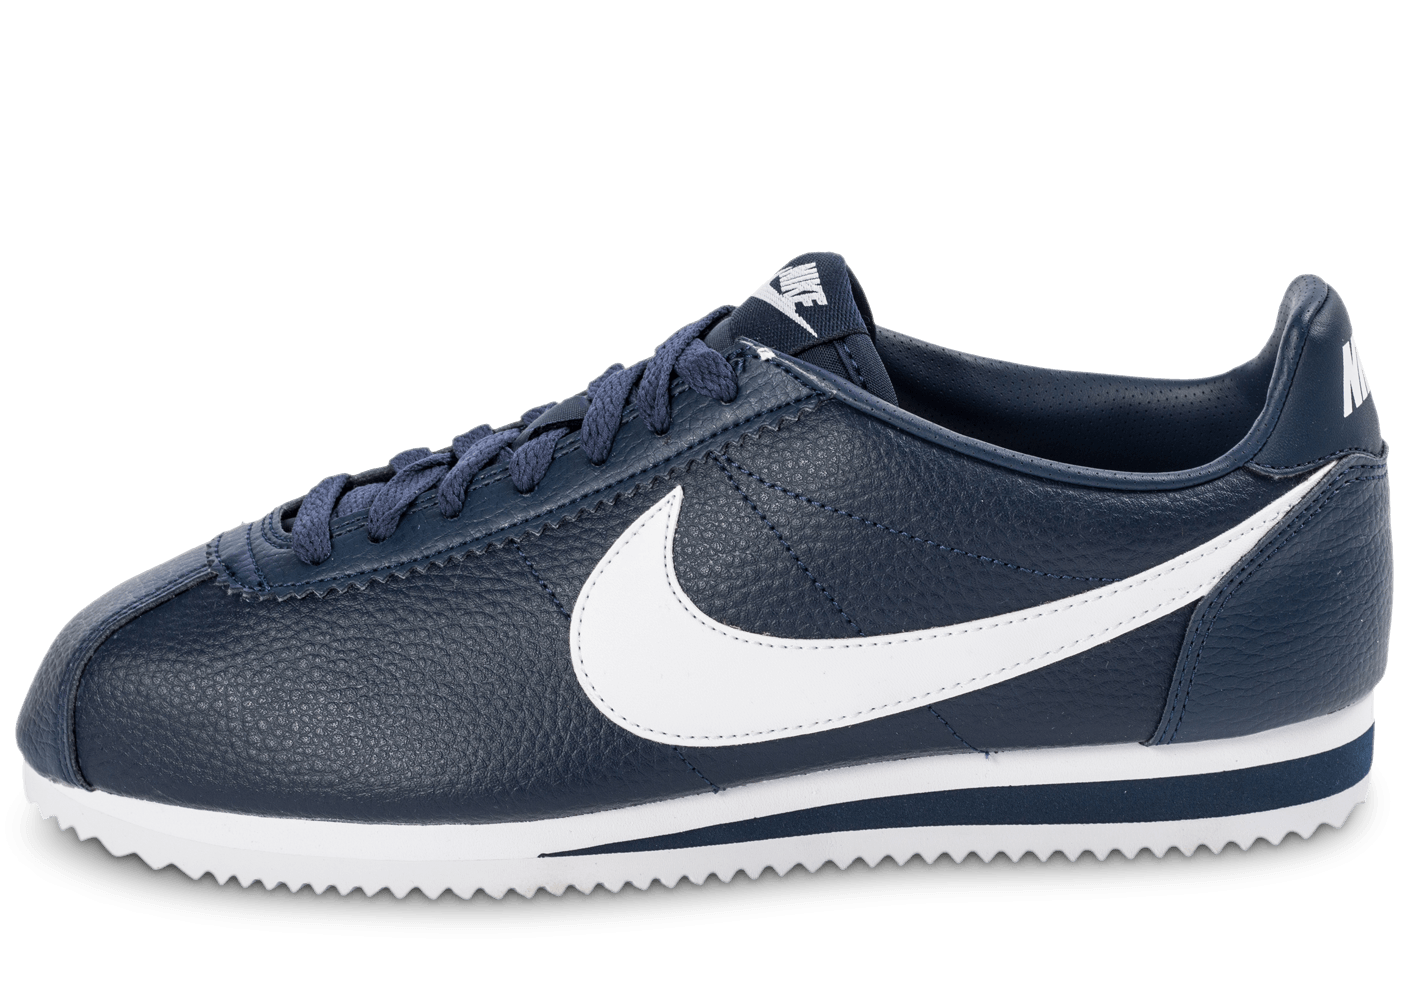 nike cortez leather bleu marine chaussures baskets homme chausport. Black Bedroom Furniture Sets. Home Design Ideas